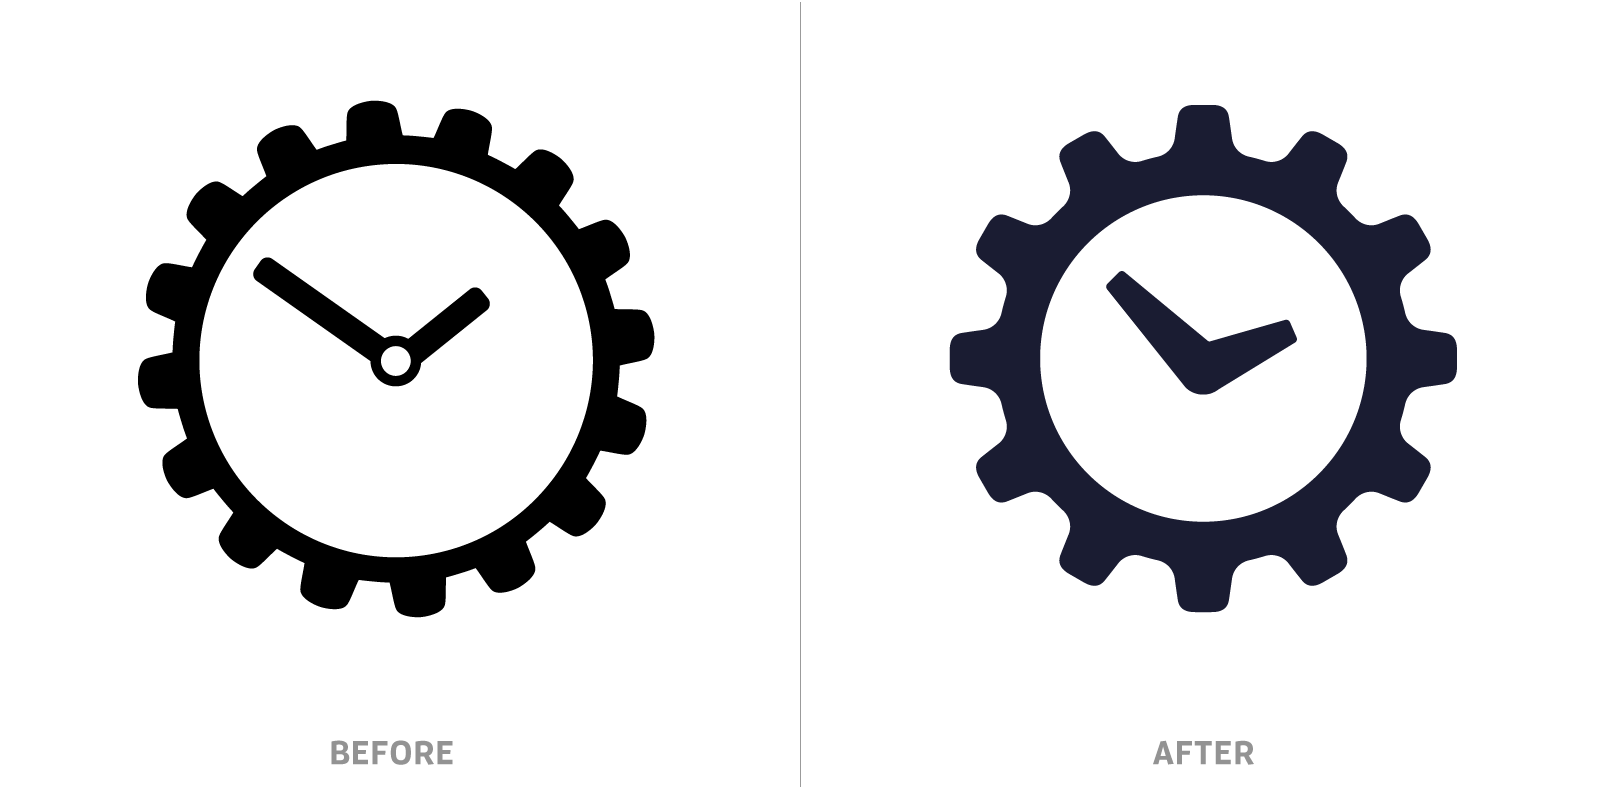 Steamclock Logo Comparison